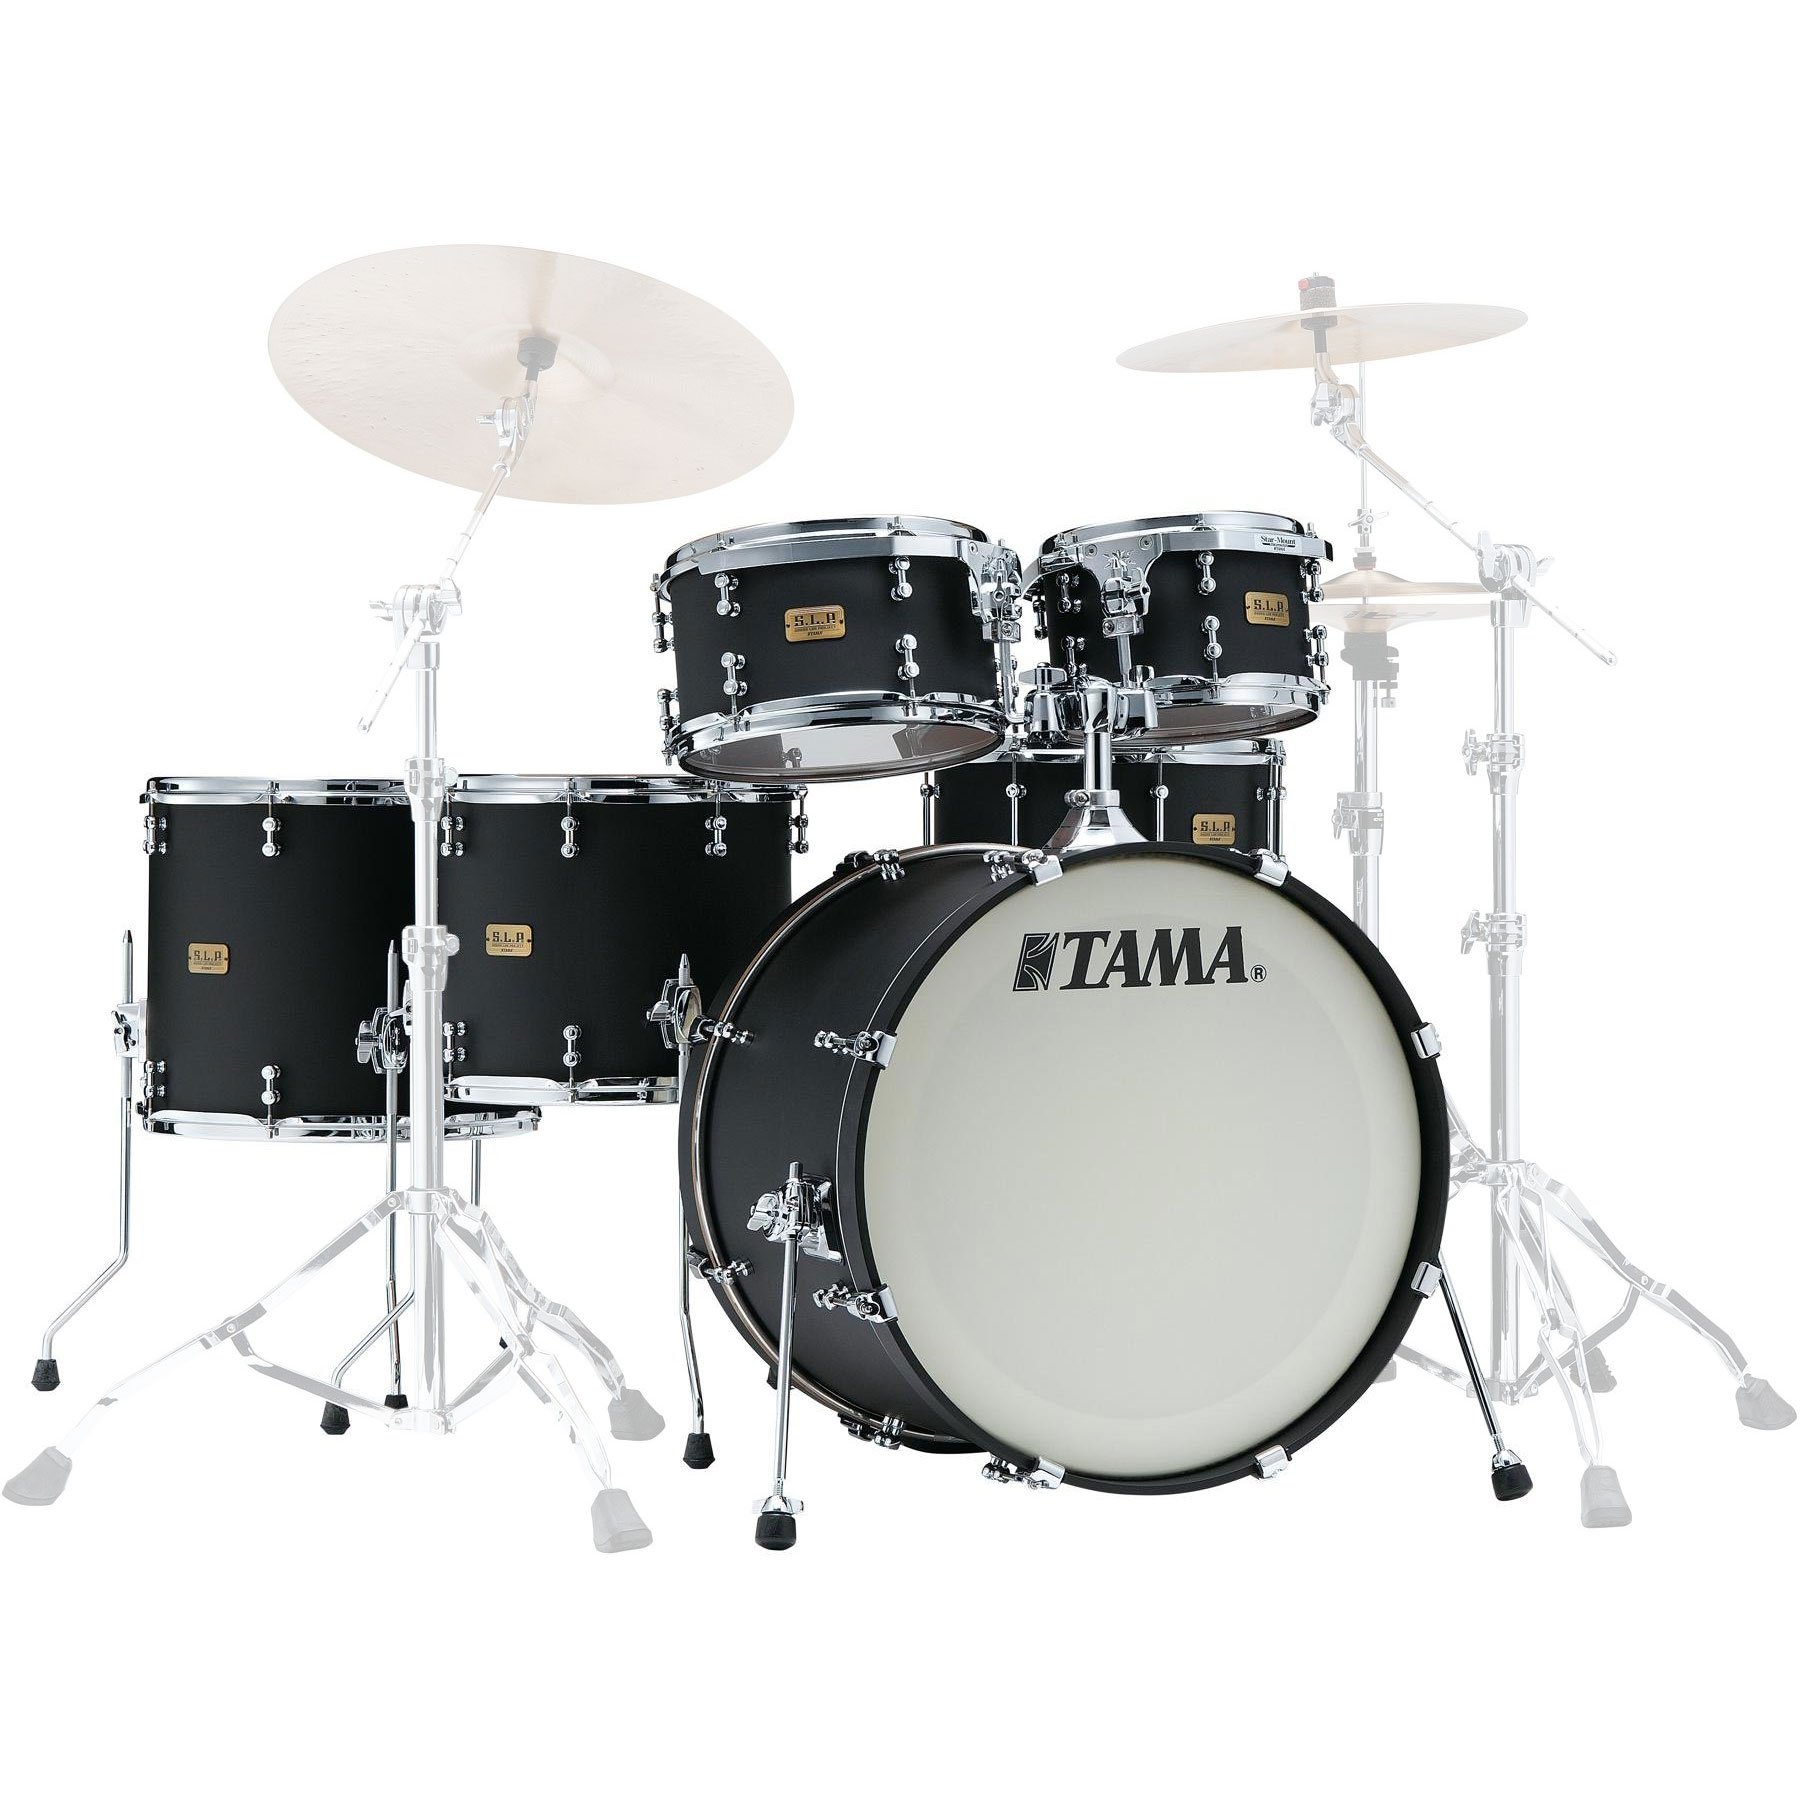 "Tama S.L.P. Dynamic Kapur 5-Piece Drum Set Shell Pack (22"" Bass, 10/12/14/16"" Toms) in Flat Black"